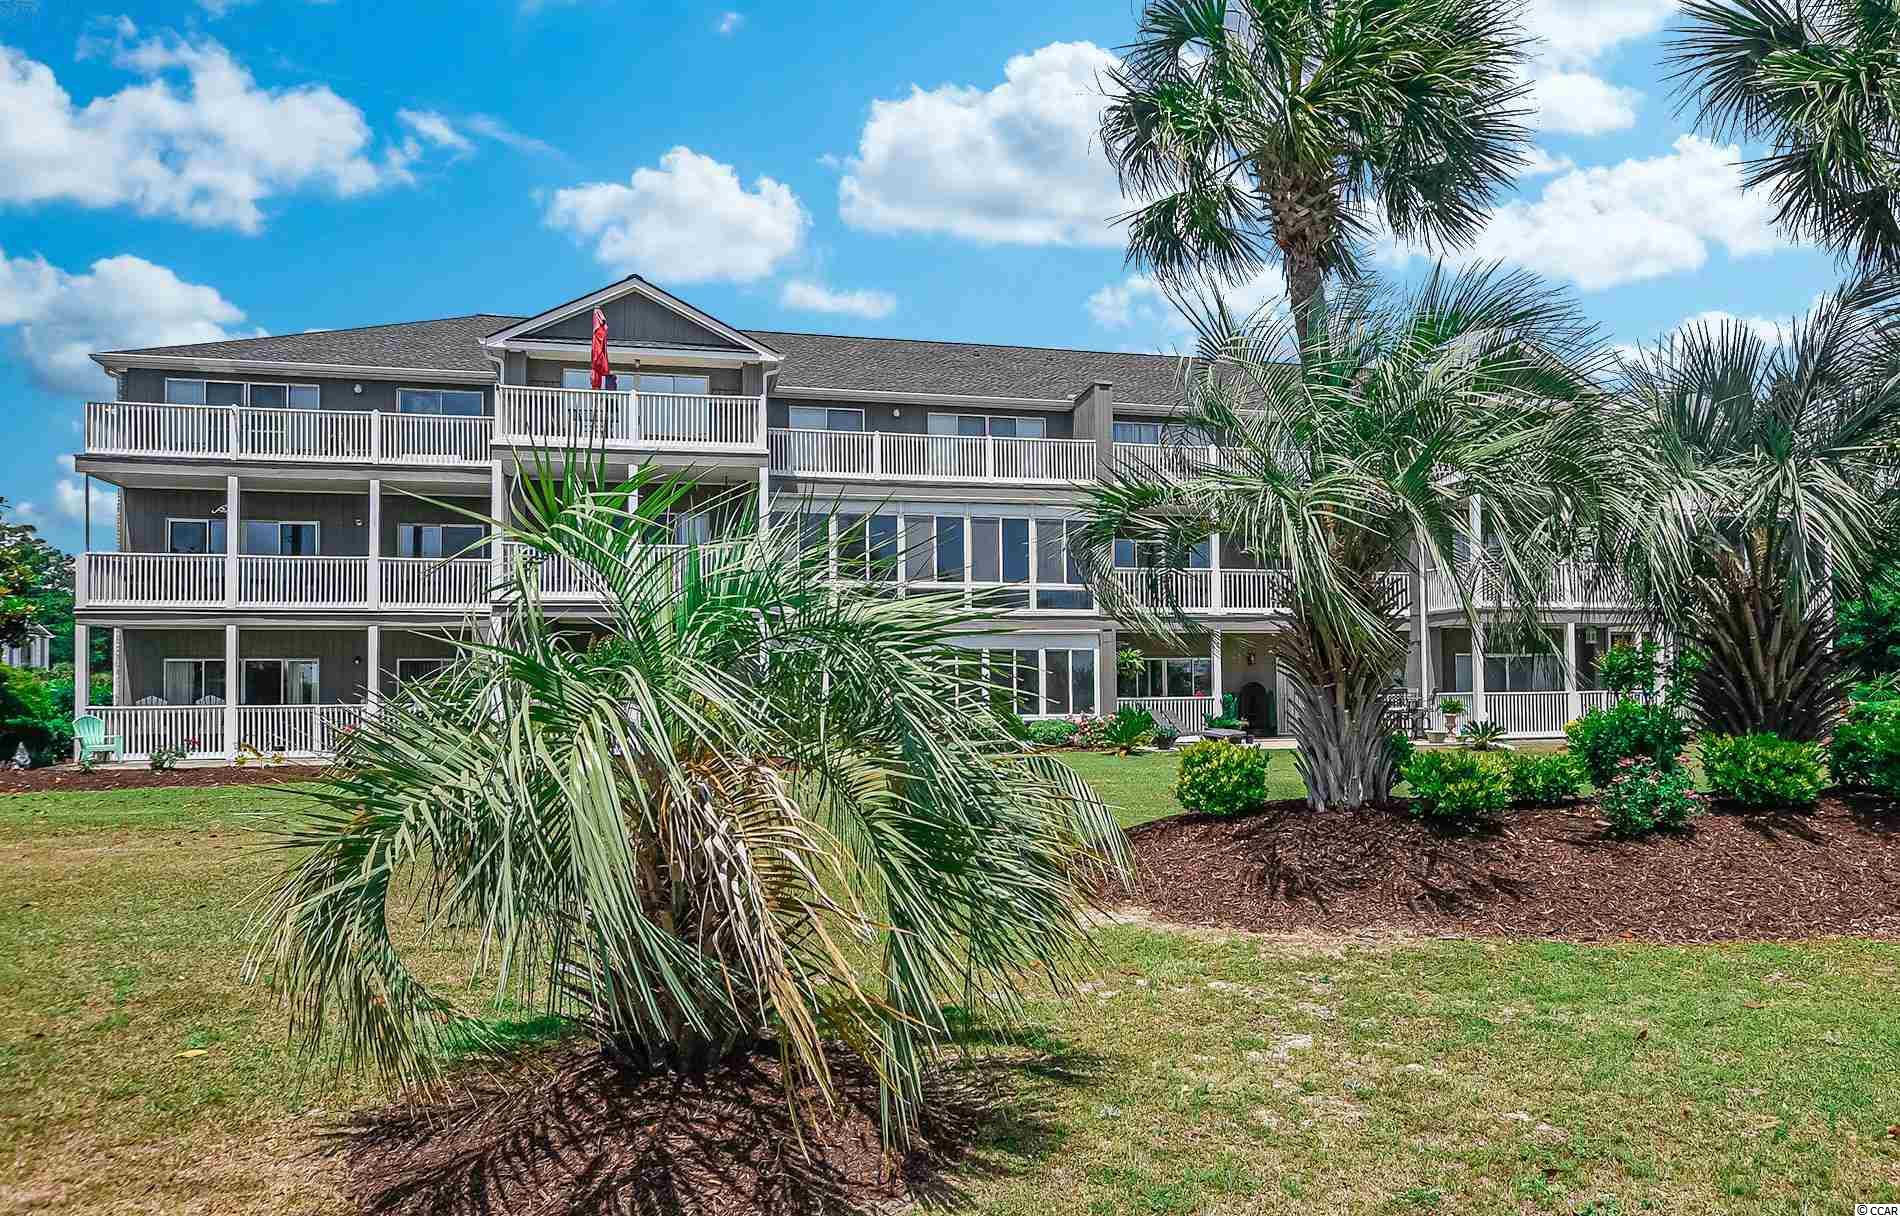 Amazing opportunity to own this gorgeous second floor end unit in Carolina Yacht Landing.  This is a gated waterway community with available boat storage, boat slips, and golf carts allowed.  There are 2 pools, fitness center, BBQ areas, and water fountains throughout the spacious grounds.  Your condo features a large porch for enjoying the SC weather.  Inside has updated flooring, paint and a light, airy, beach feel.  Located very close to restaurants, shops, entertainment, golf, and of course the sand of Cherry Grove Beach.  This condo is an absolute gem and perfect for a permanent residence or vacation get-away.